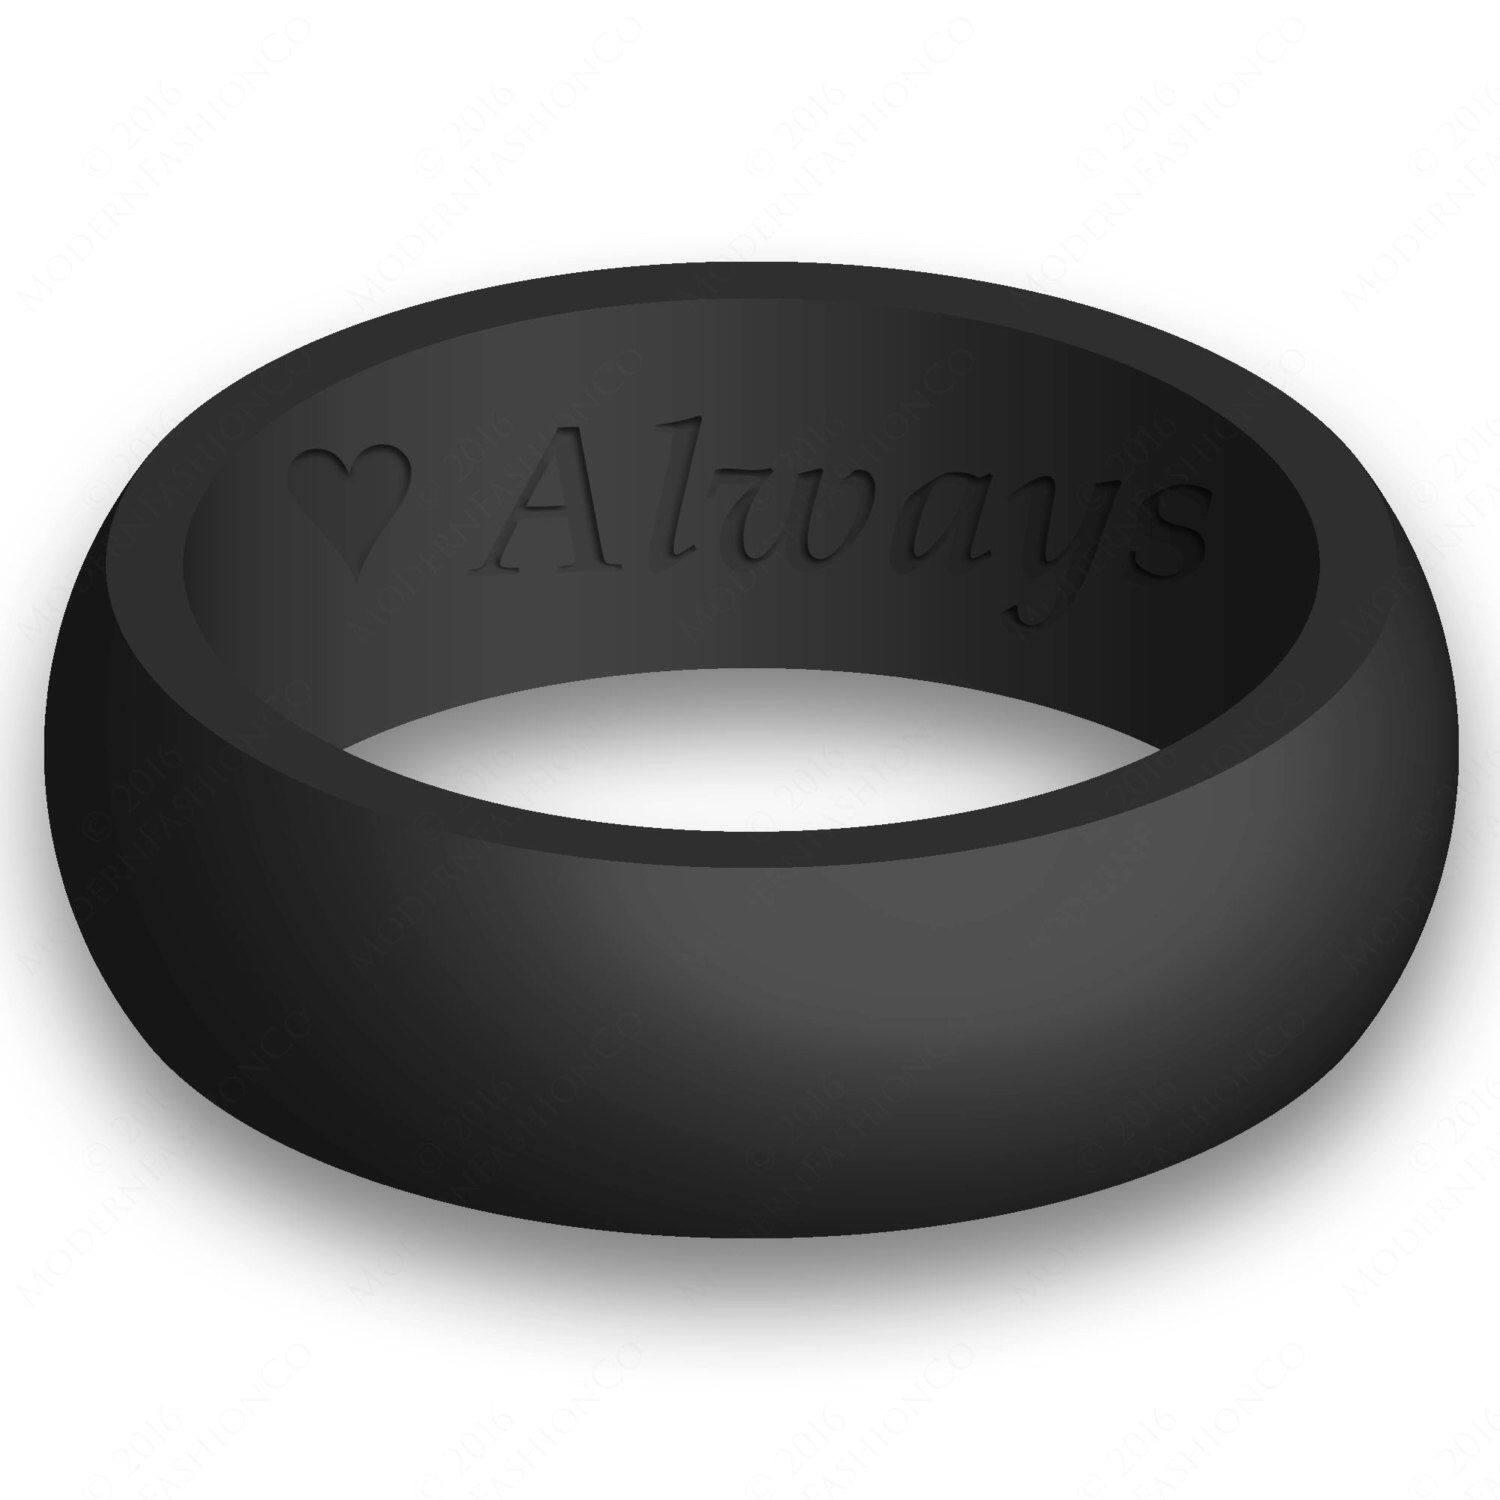 safety wedding band Custom Engraving Mens Silicone Wedding Ring Band Flexible Hypoallergenic Safety Rubber Modern Athletic Active Wear Man Jewelry